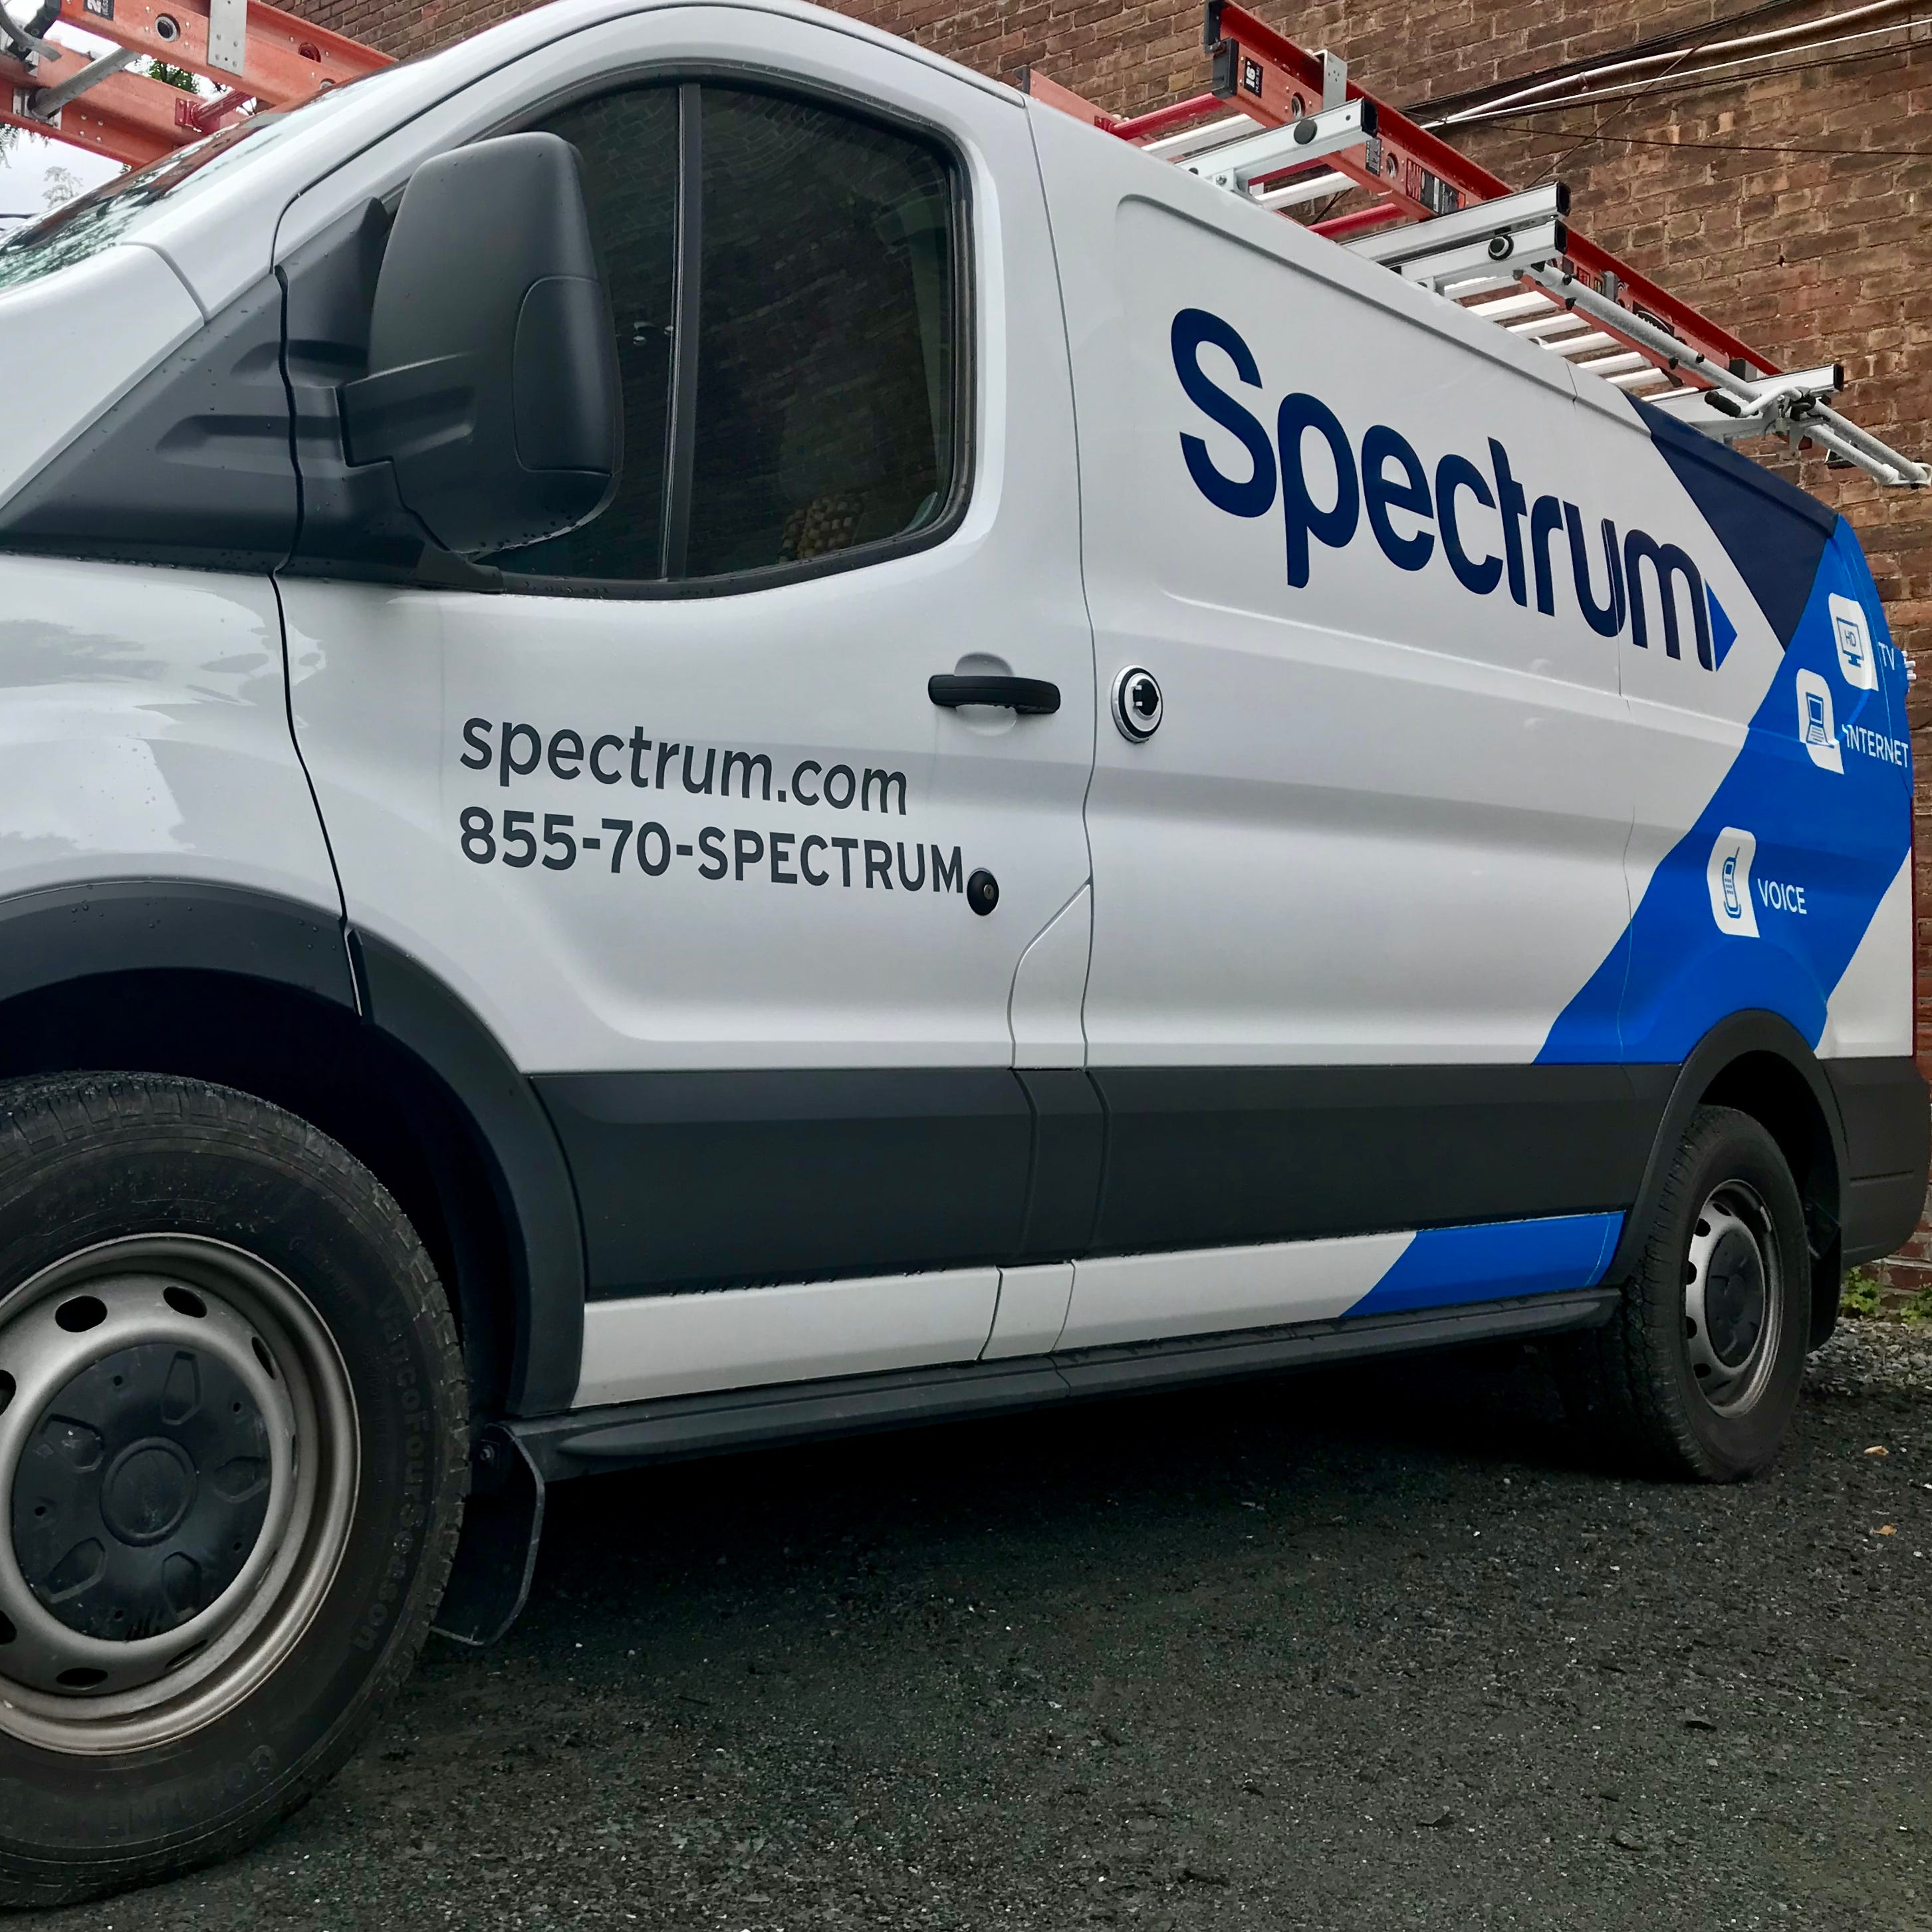 Charter Spectrum: The latest on NY's efforts to kick out cable company